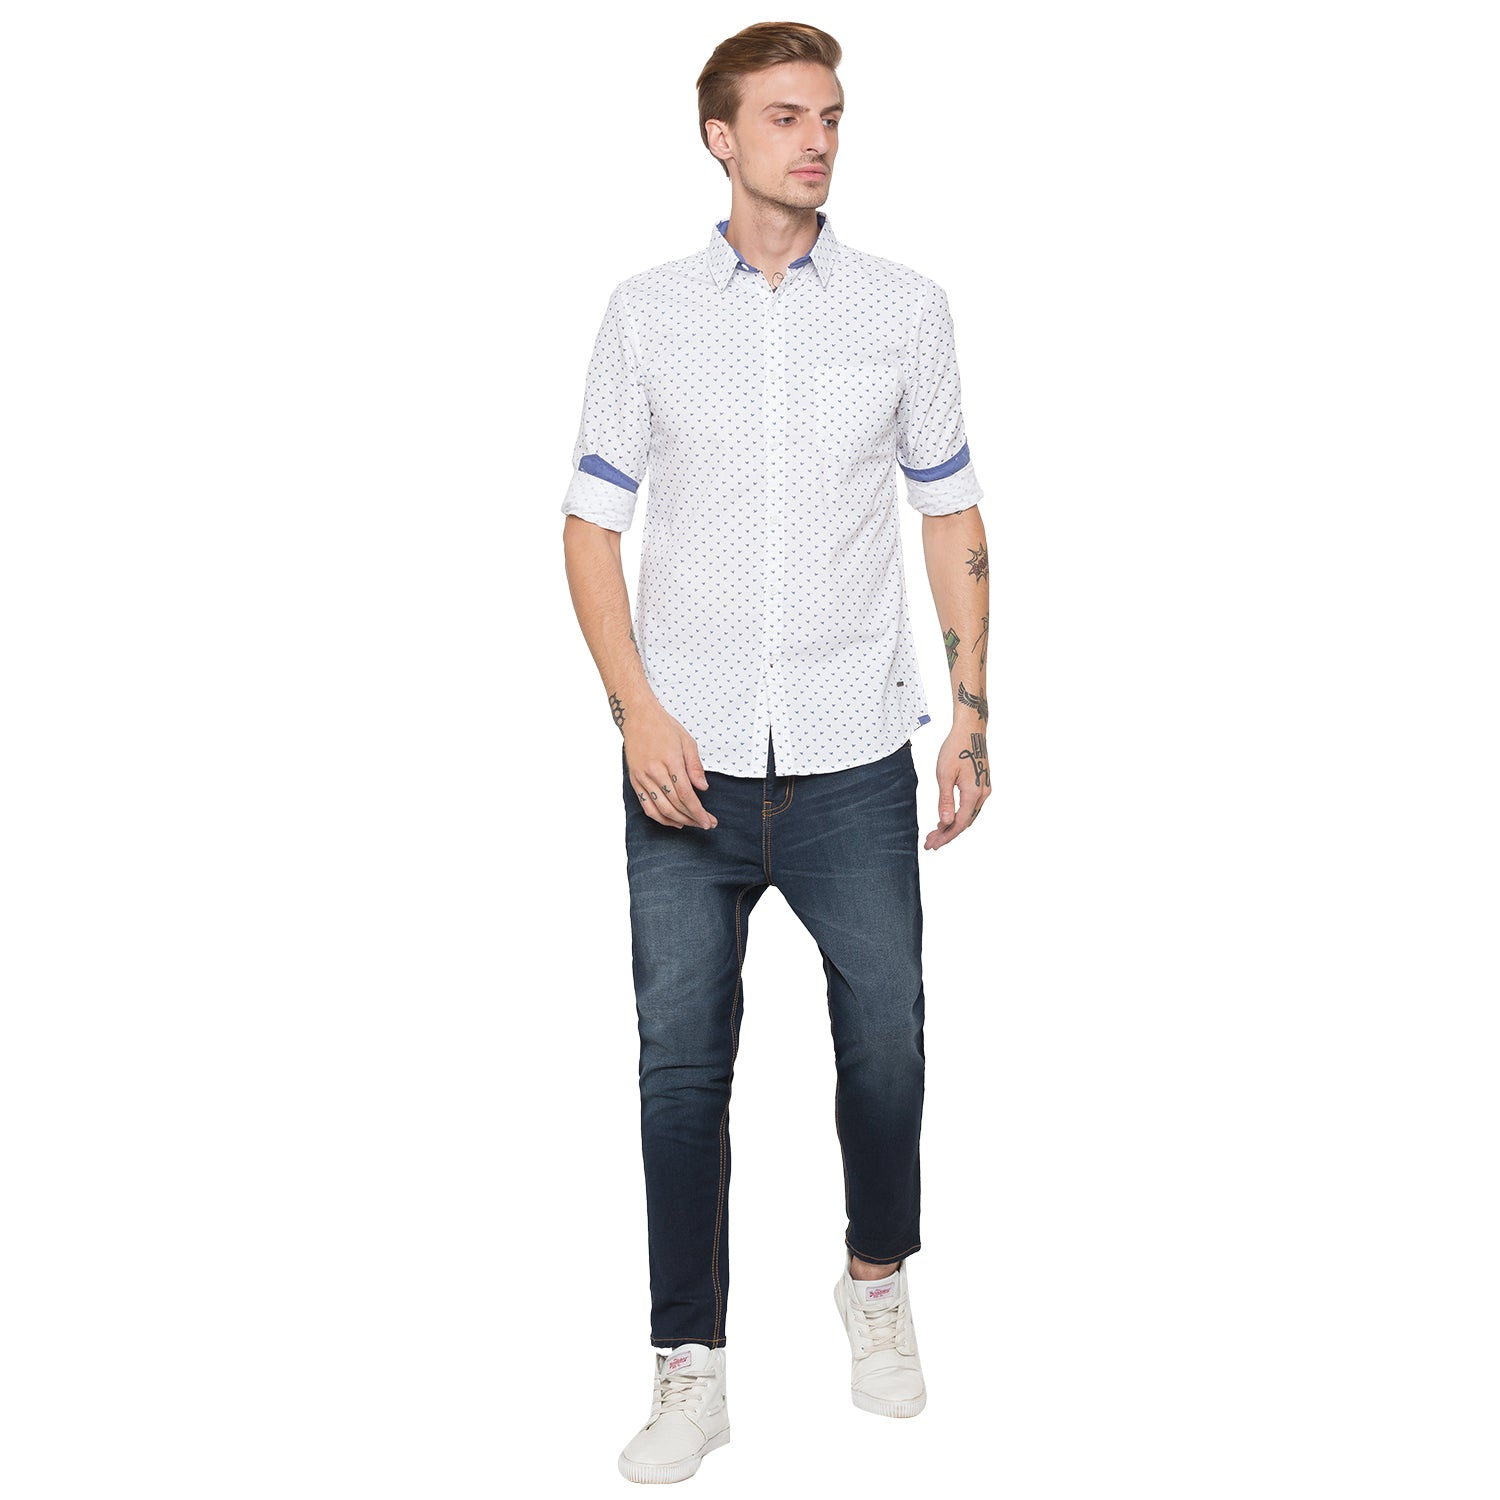 Globus White Printed Shirt-4